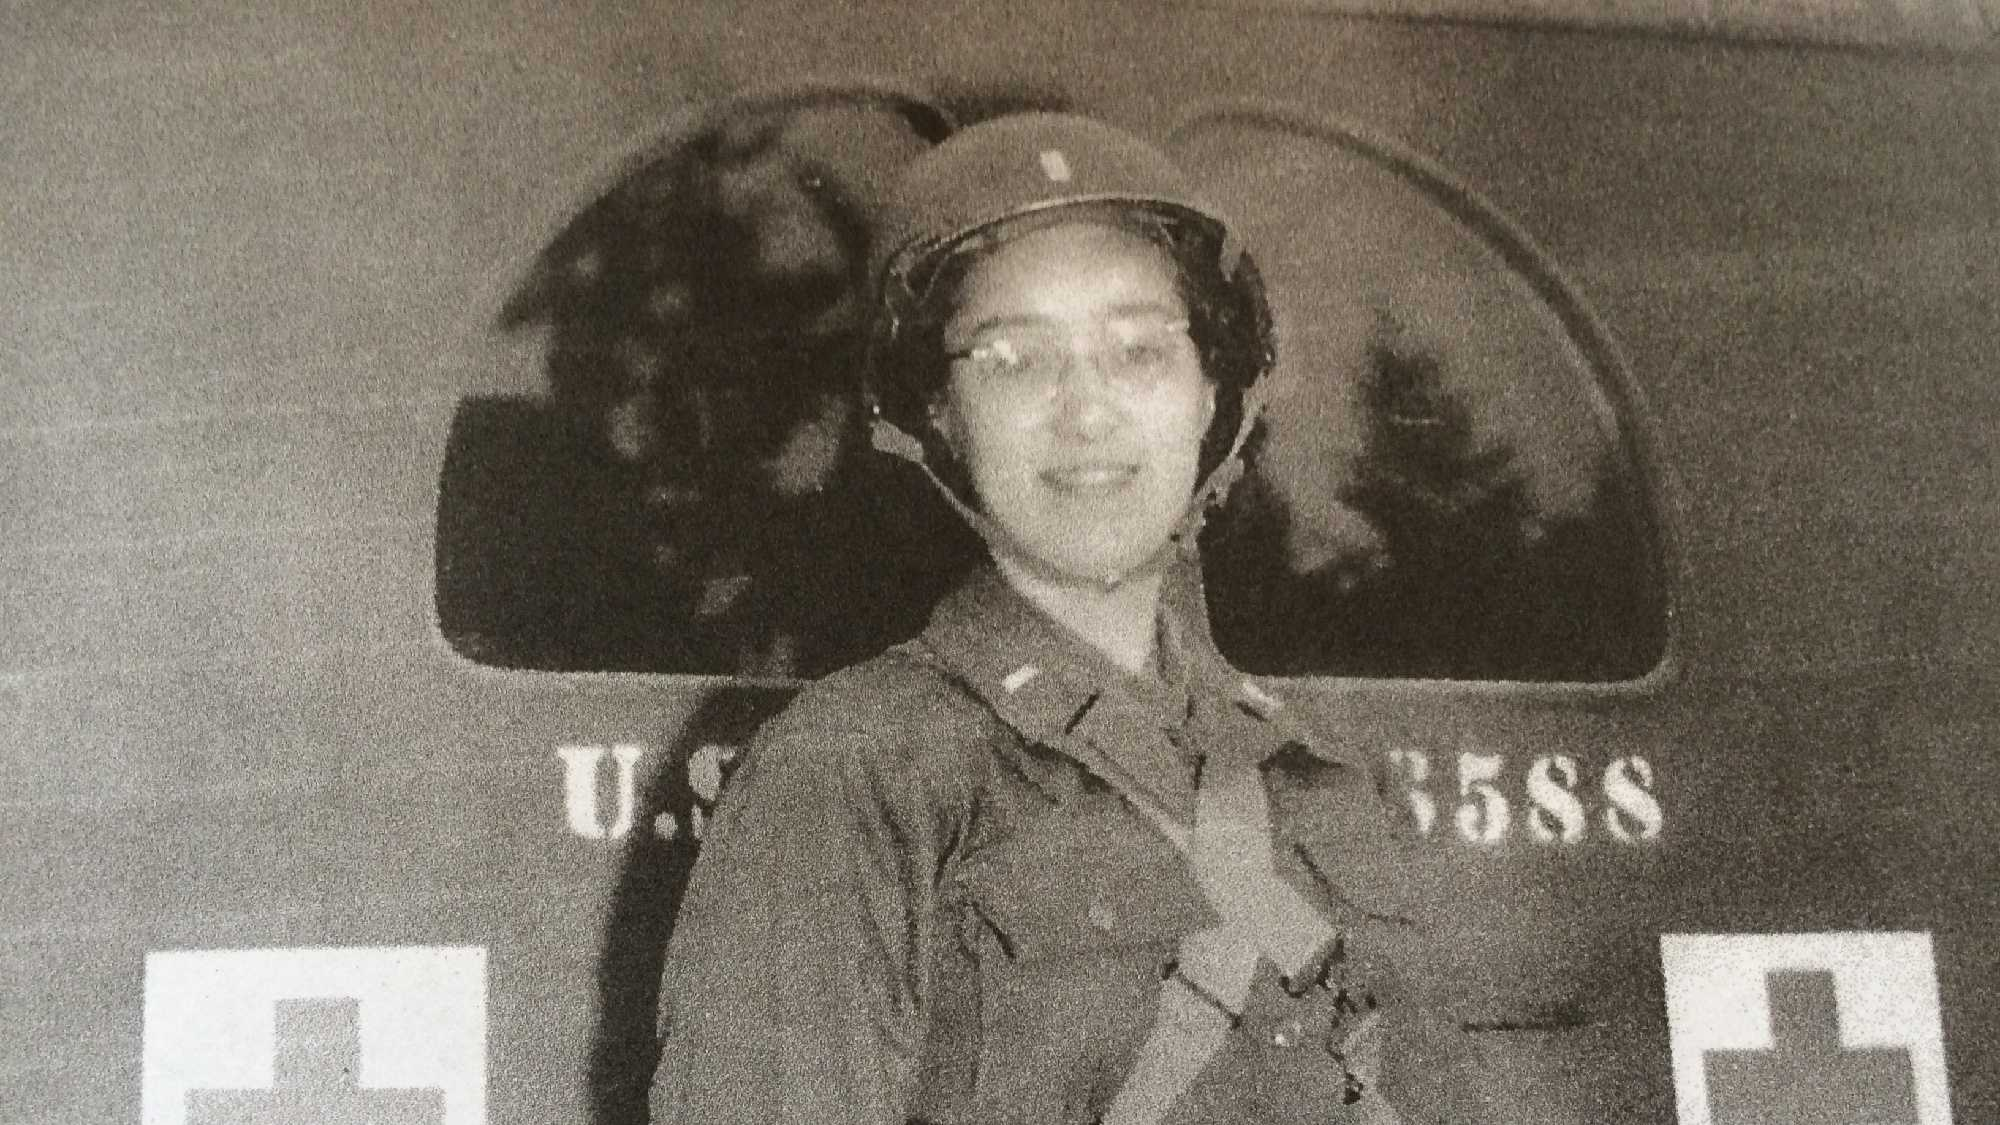 Dorothy Managan, now 93, as an Army nurse in the 1940s